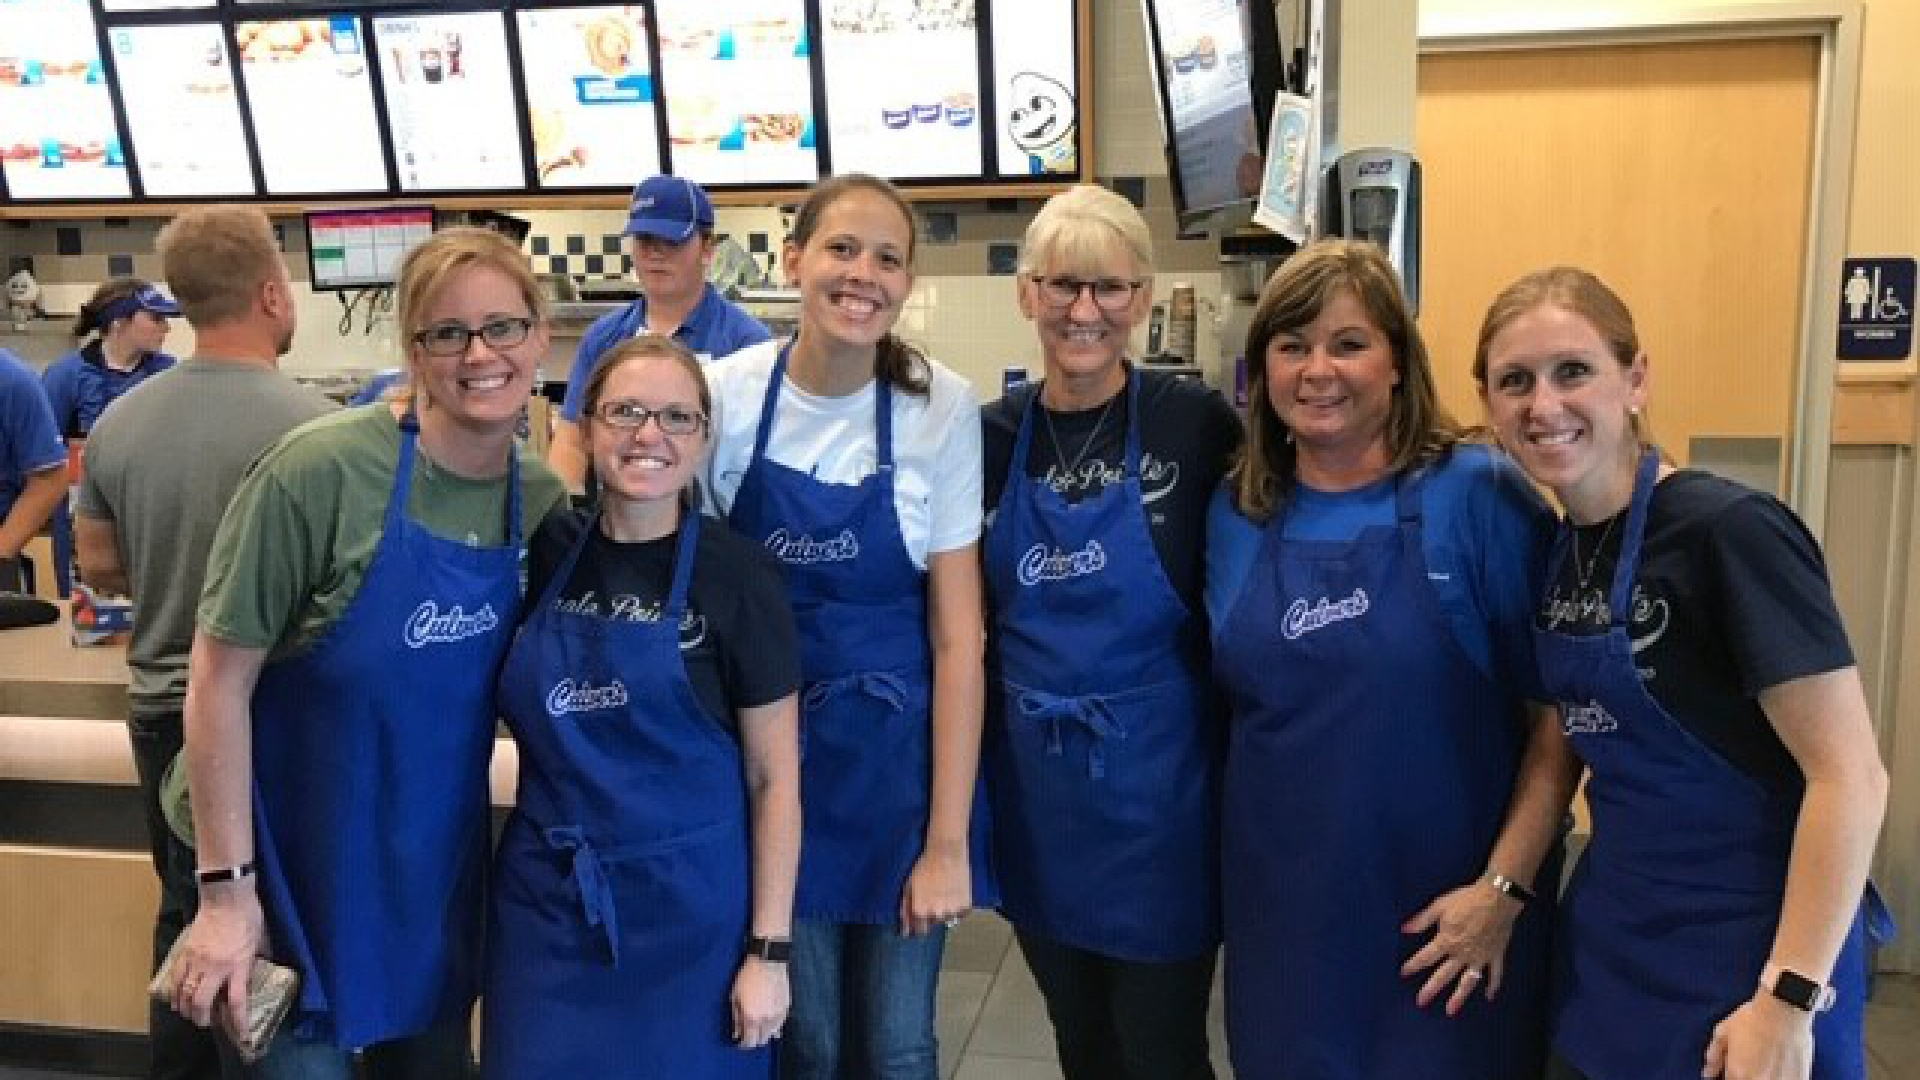 Teachers serving at Culvers